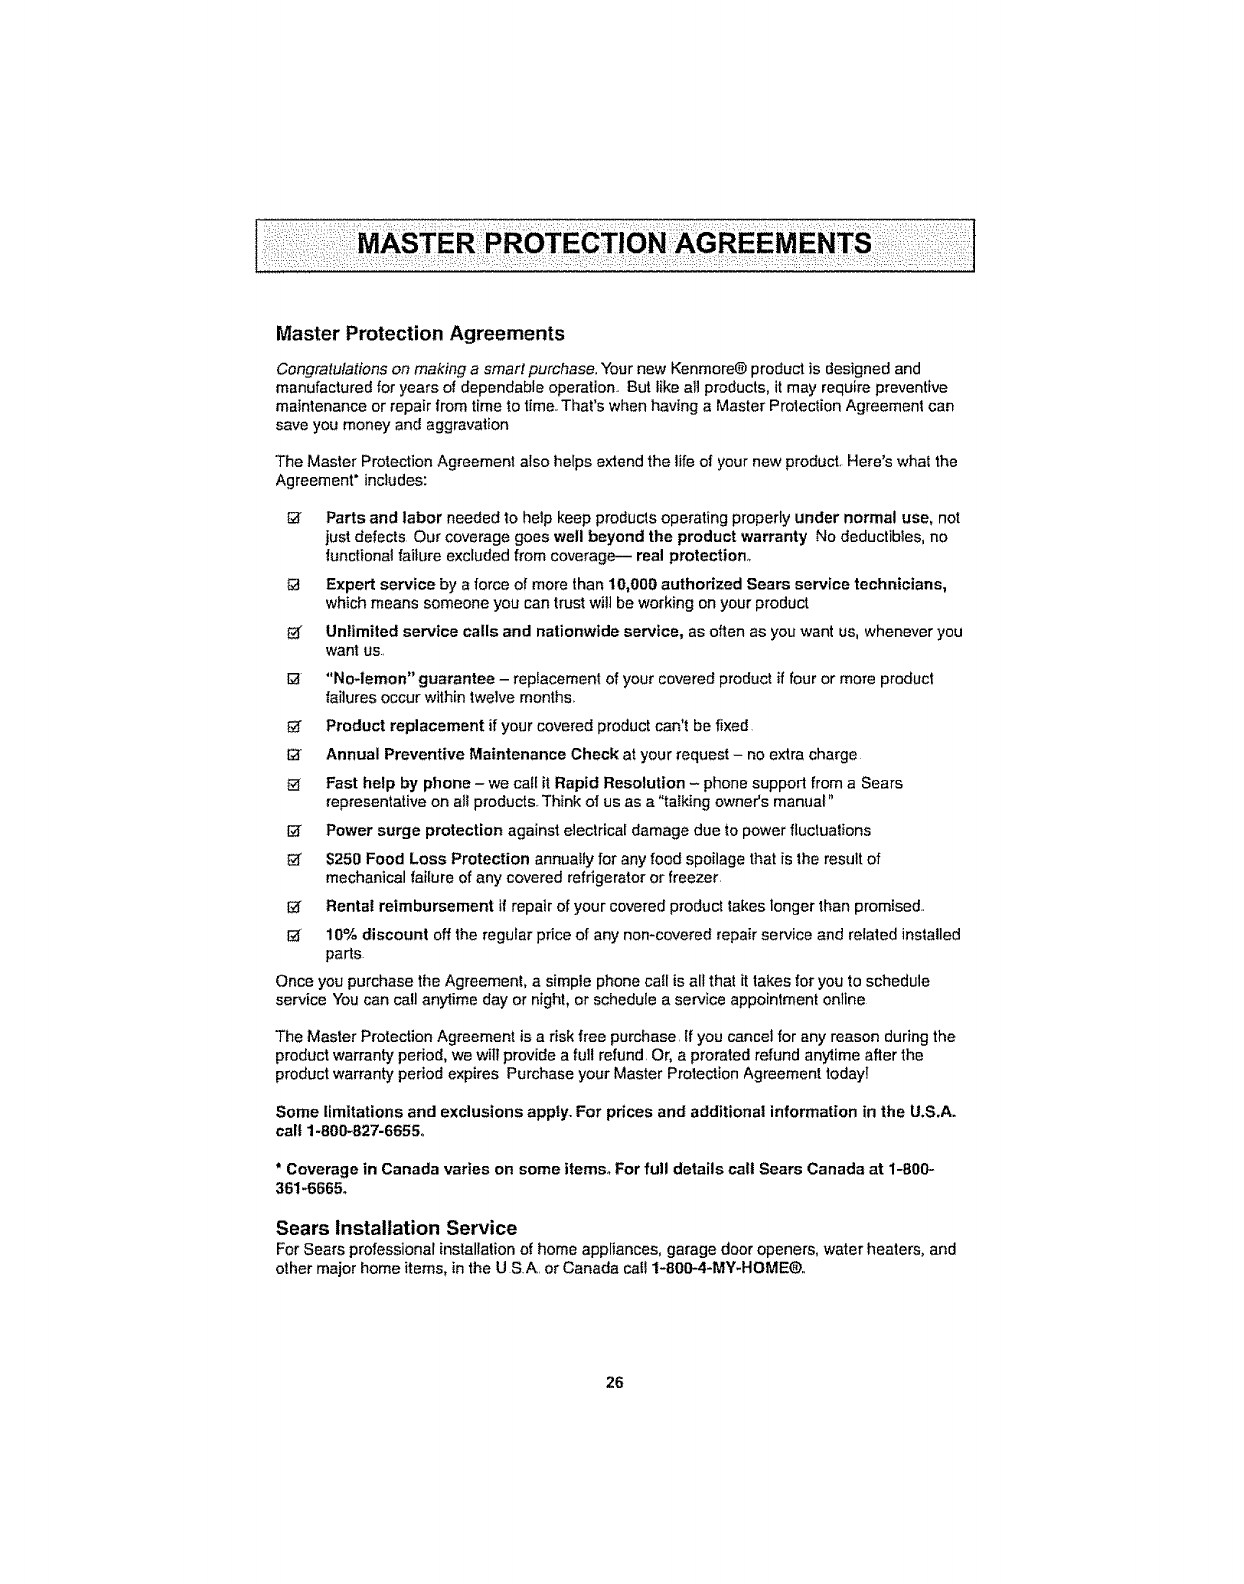 Kenmore 116 29914 116 29915 Master Protection Agreements Sears Installation Service